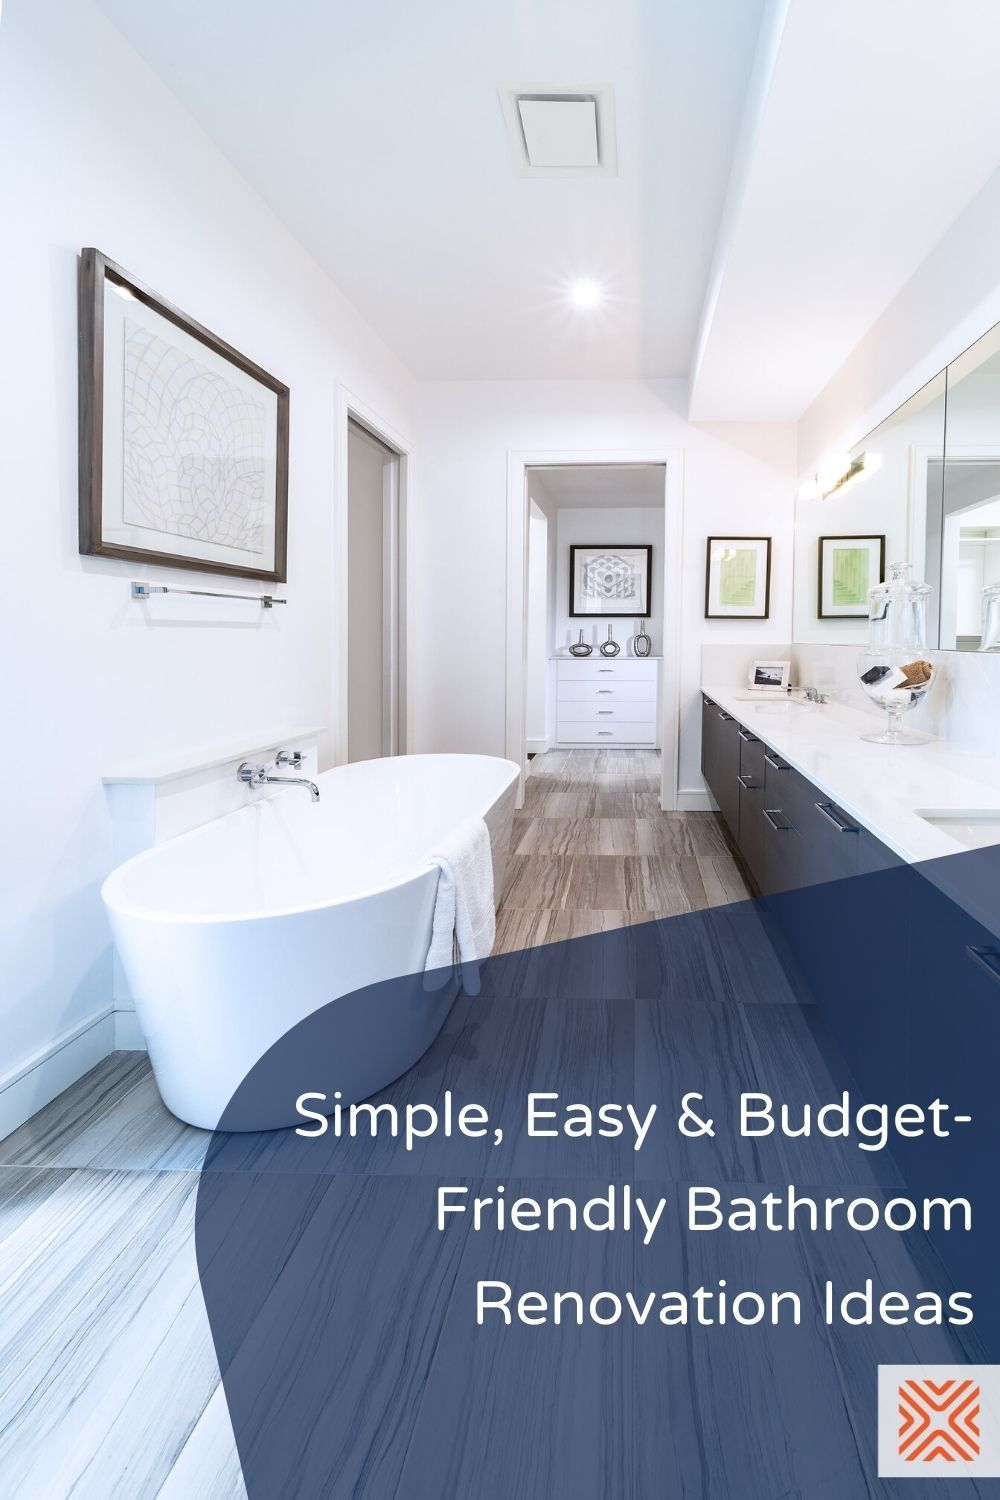 Remodeling a small bathroom on a budget? Take a look at these affordable small bathroom remodels that don't compromise on comfort or functionality, and design a small bathroom with ease! Check them out and try them on your next bathroom remodel project.